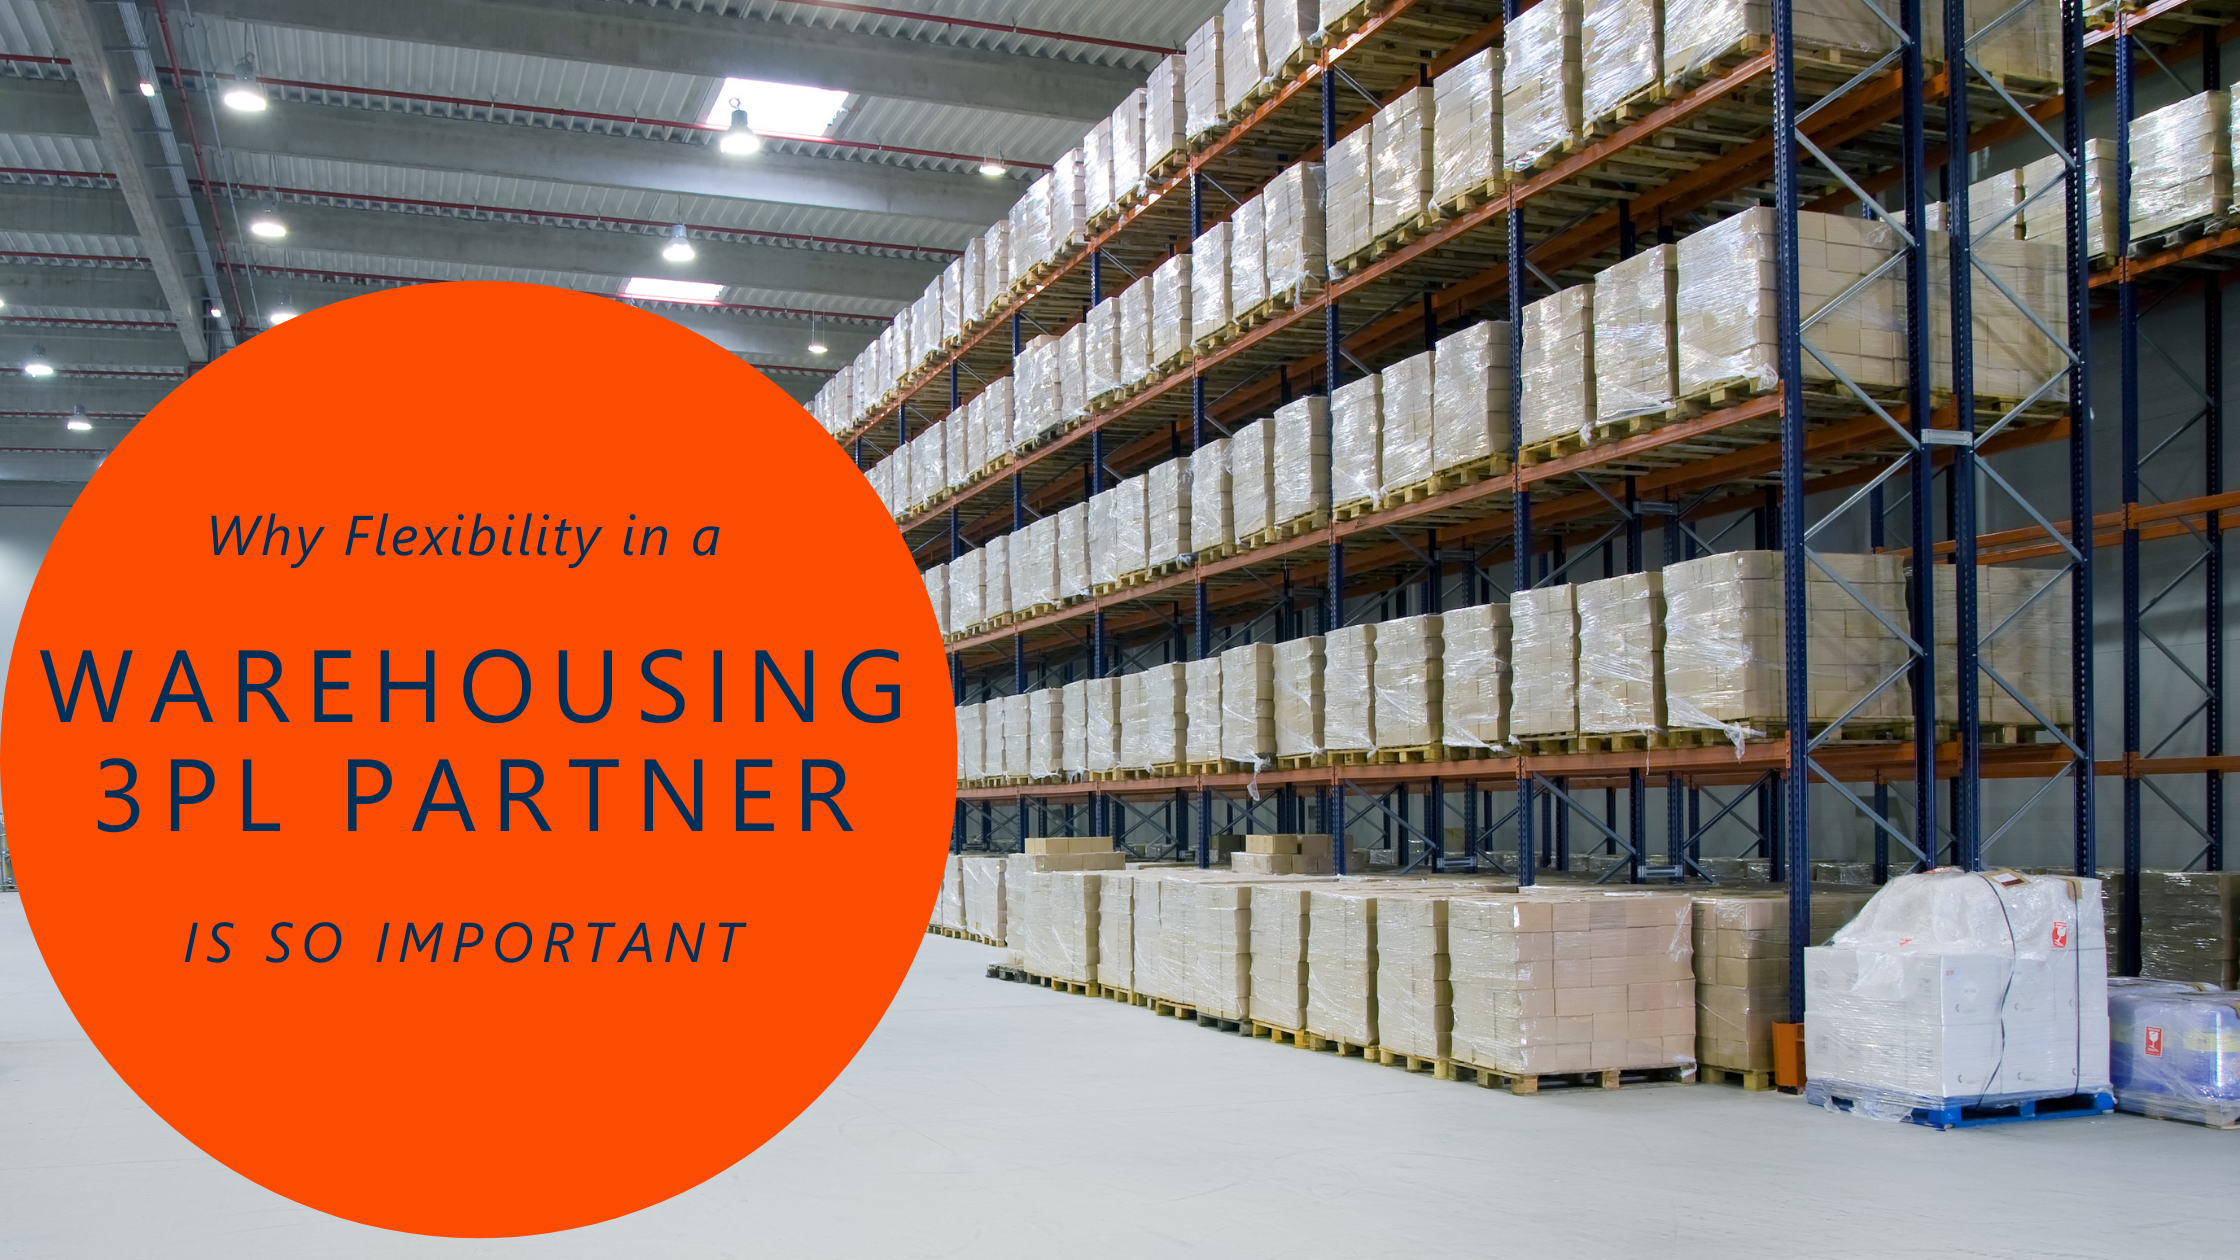 why-flexibility-in-a-warehousing-3pl-partner-is-so-important-text-over-warehousing-racking-image